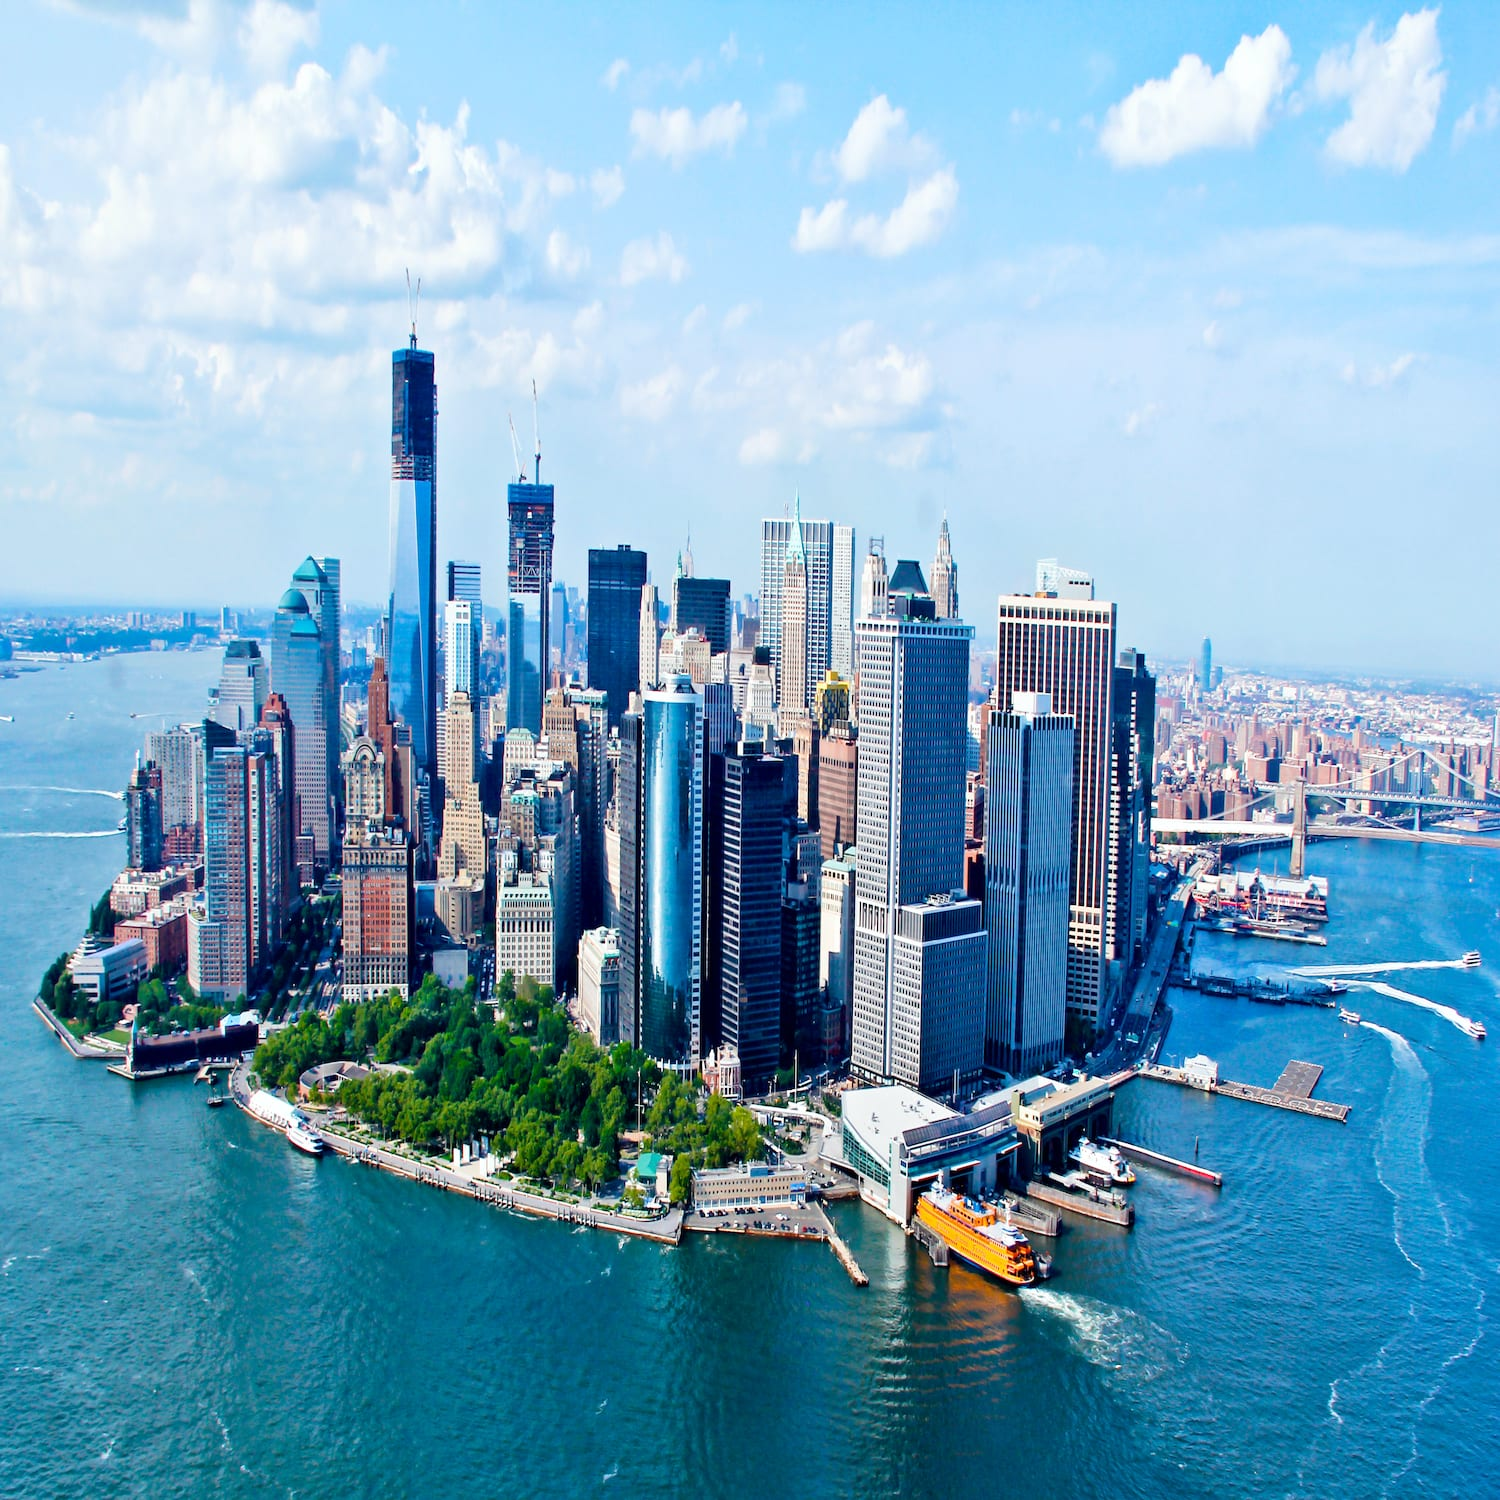 Chiropractic Practice for Sale in New York City